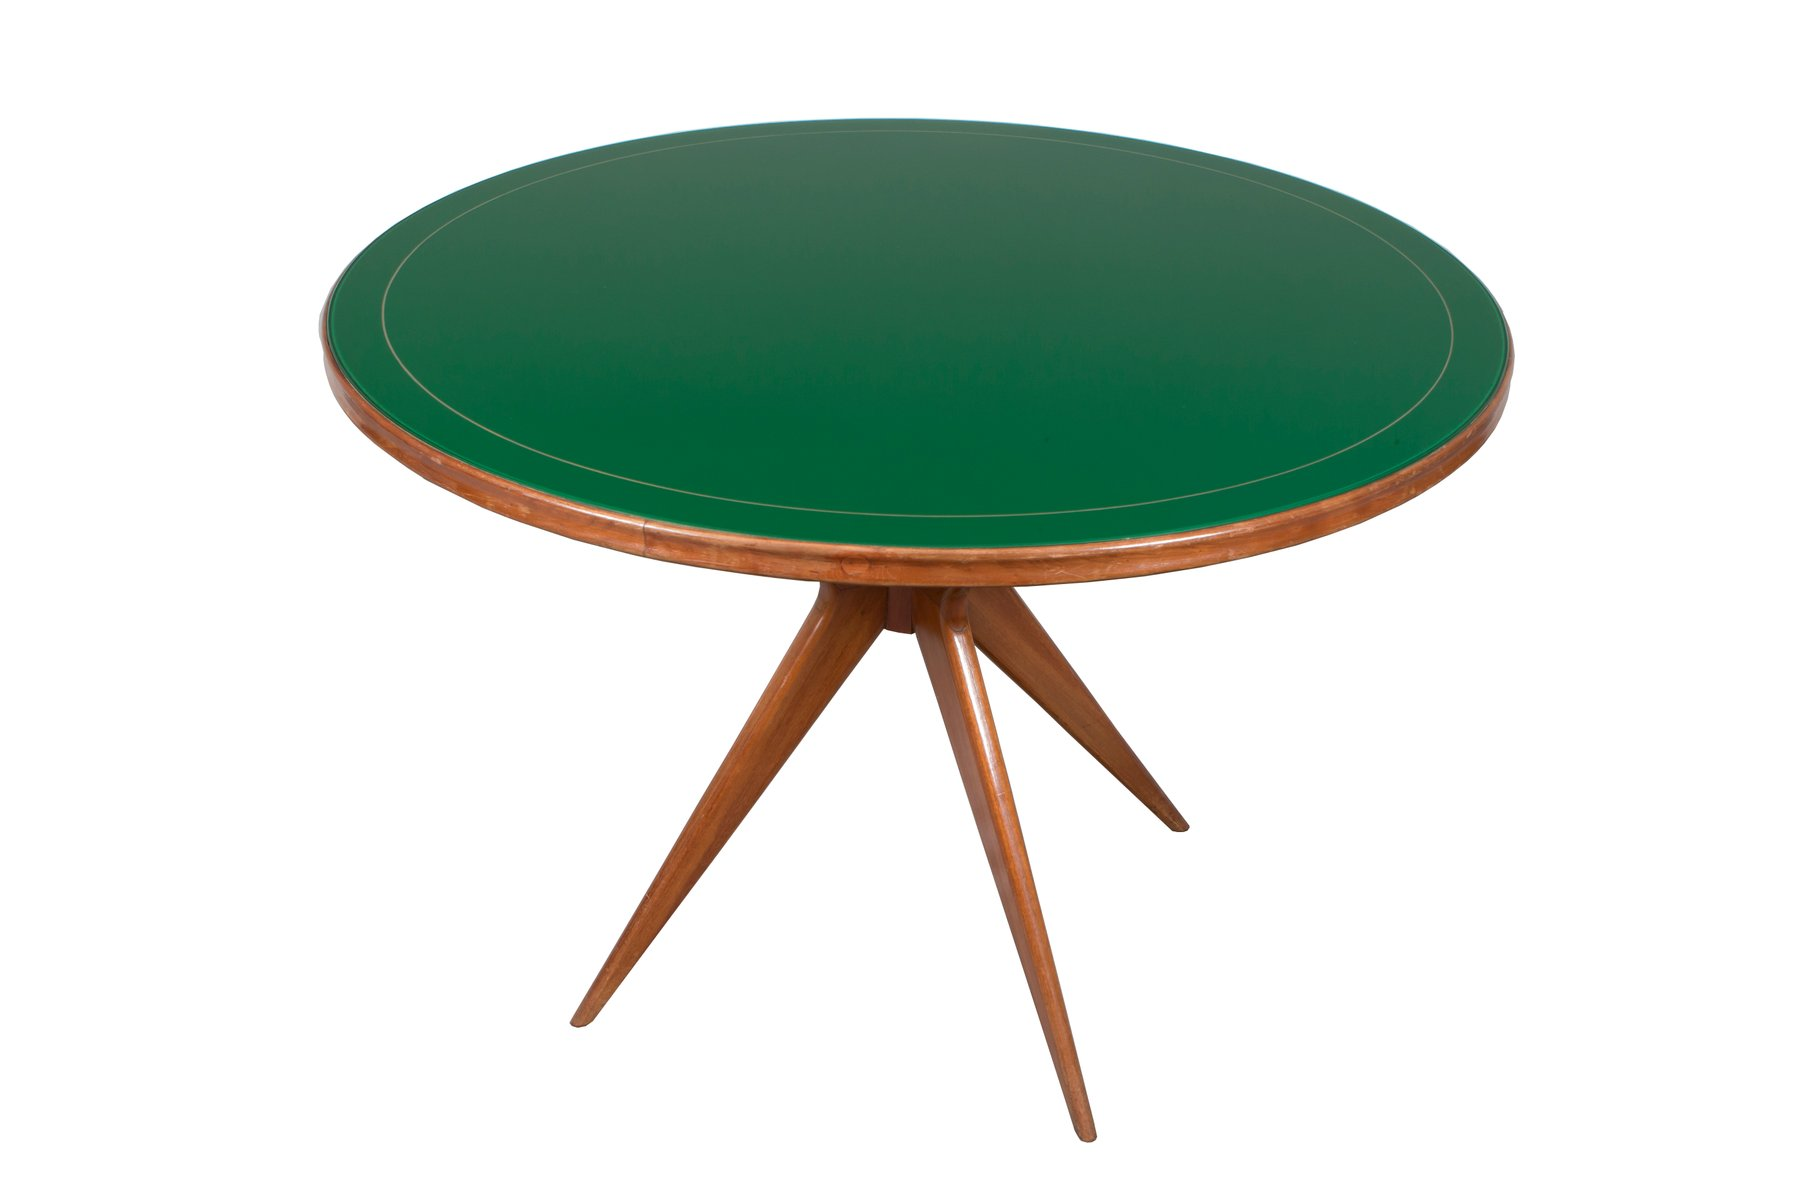 Italian Green Glass Round Table, 1950s